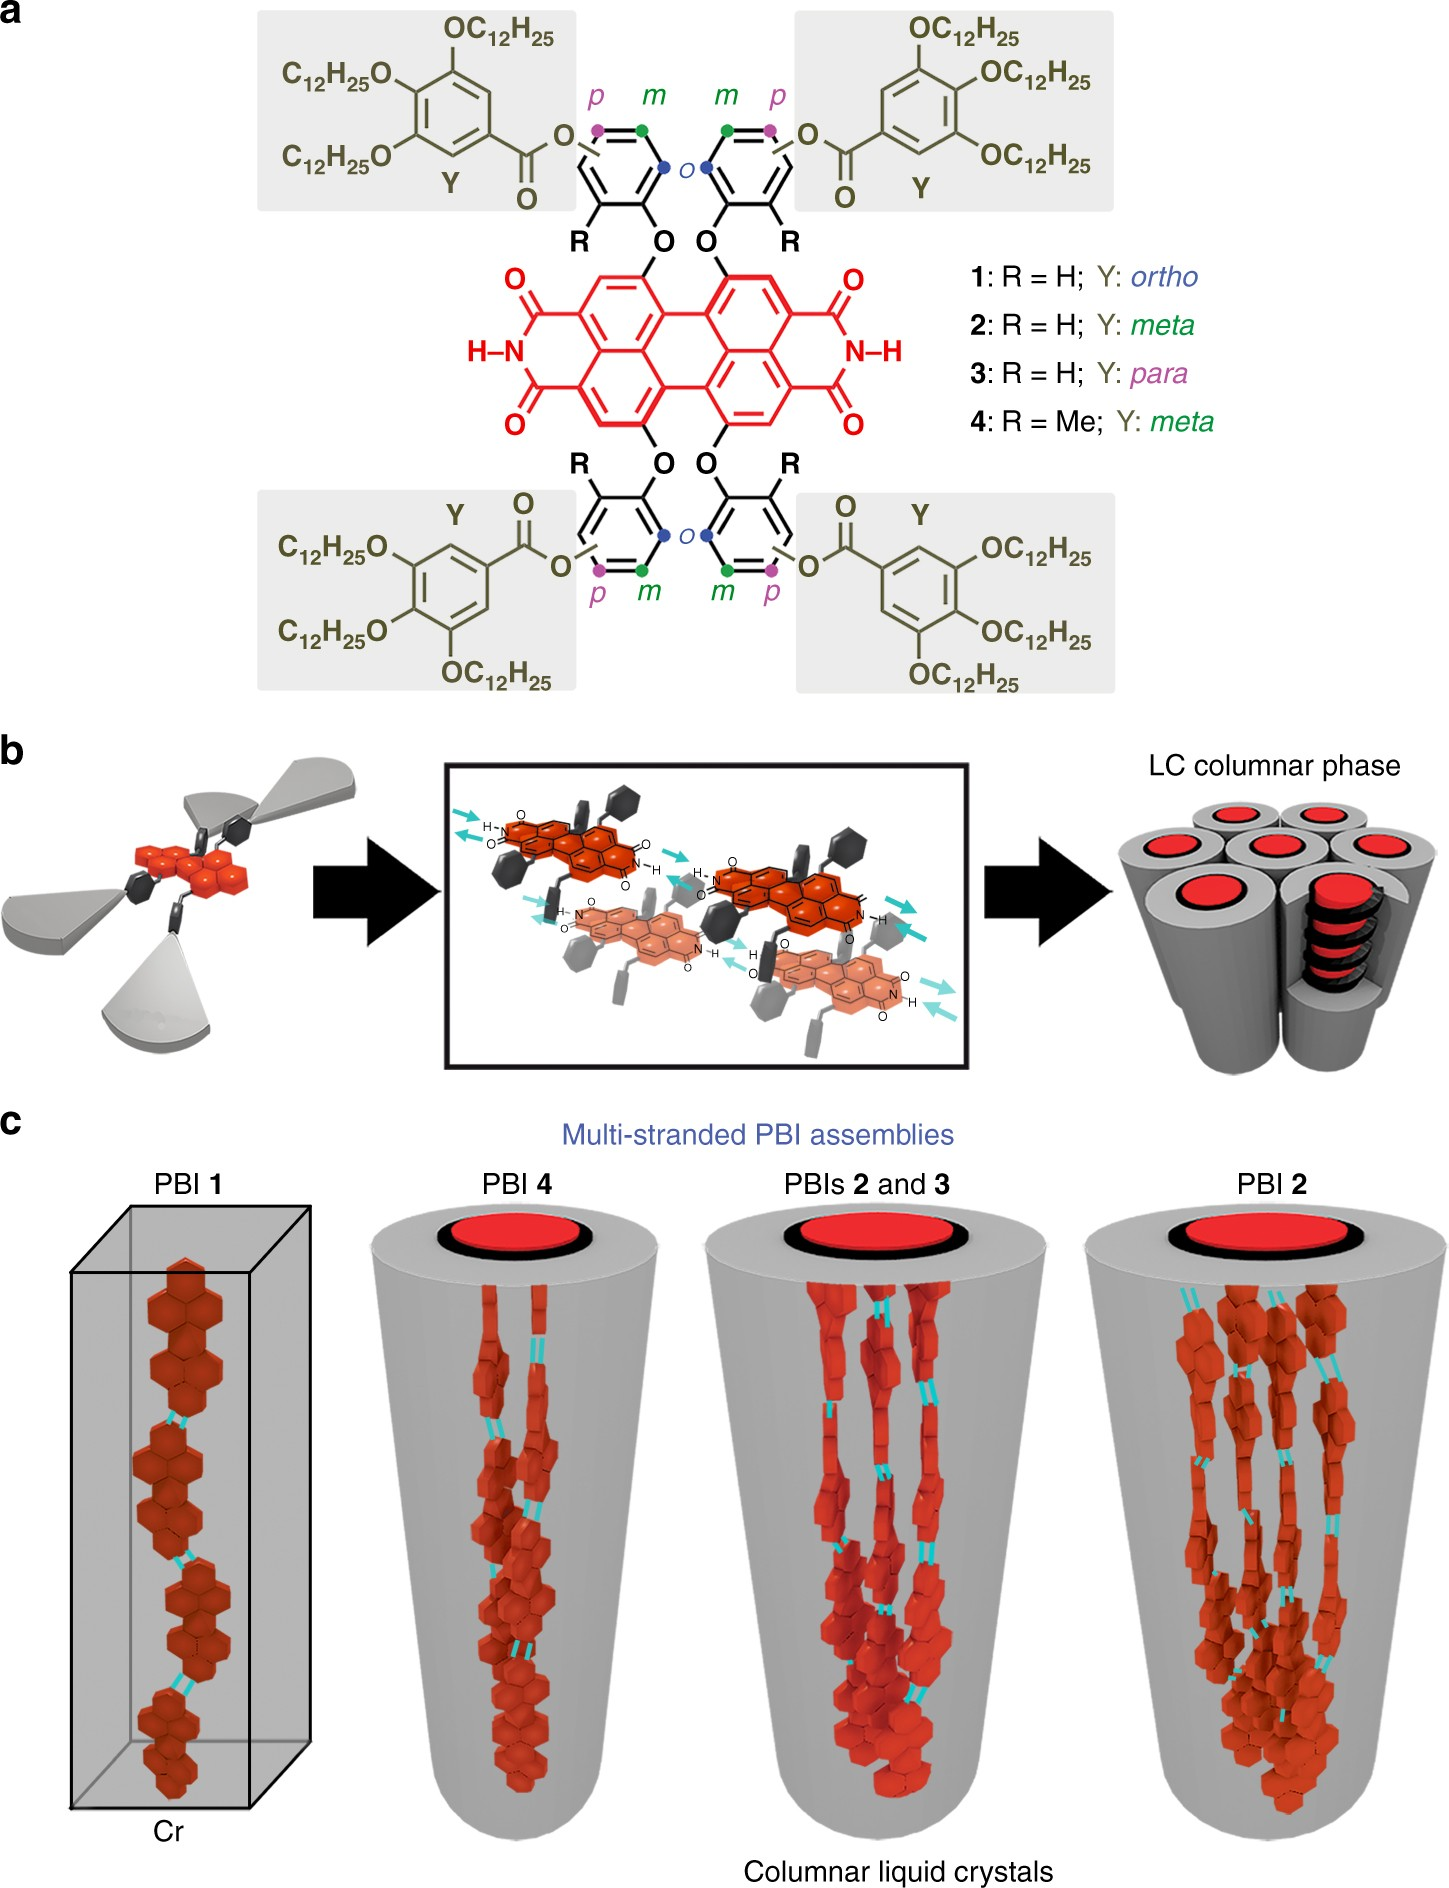 Self-assembly of multi-stranded perylene dye J-aggregates in